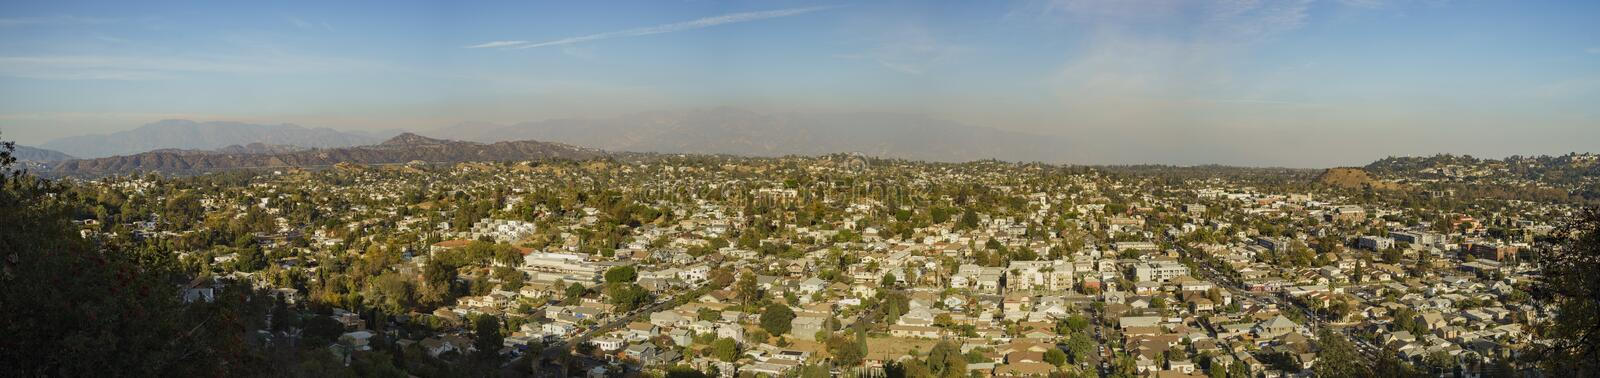 Aerial view of the cityscape of Highland Park. Los Angeles, California, United States stock photo